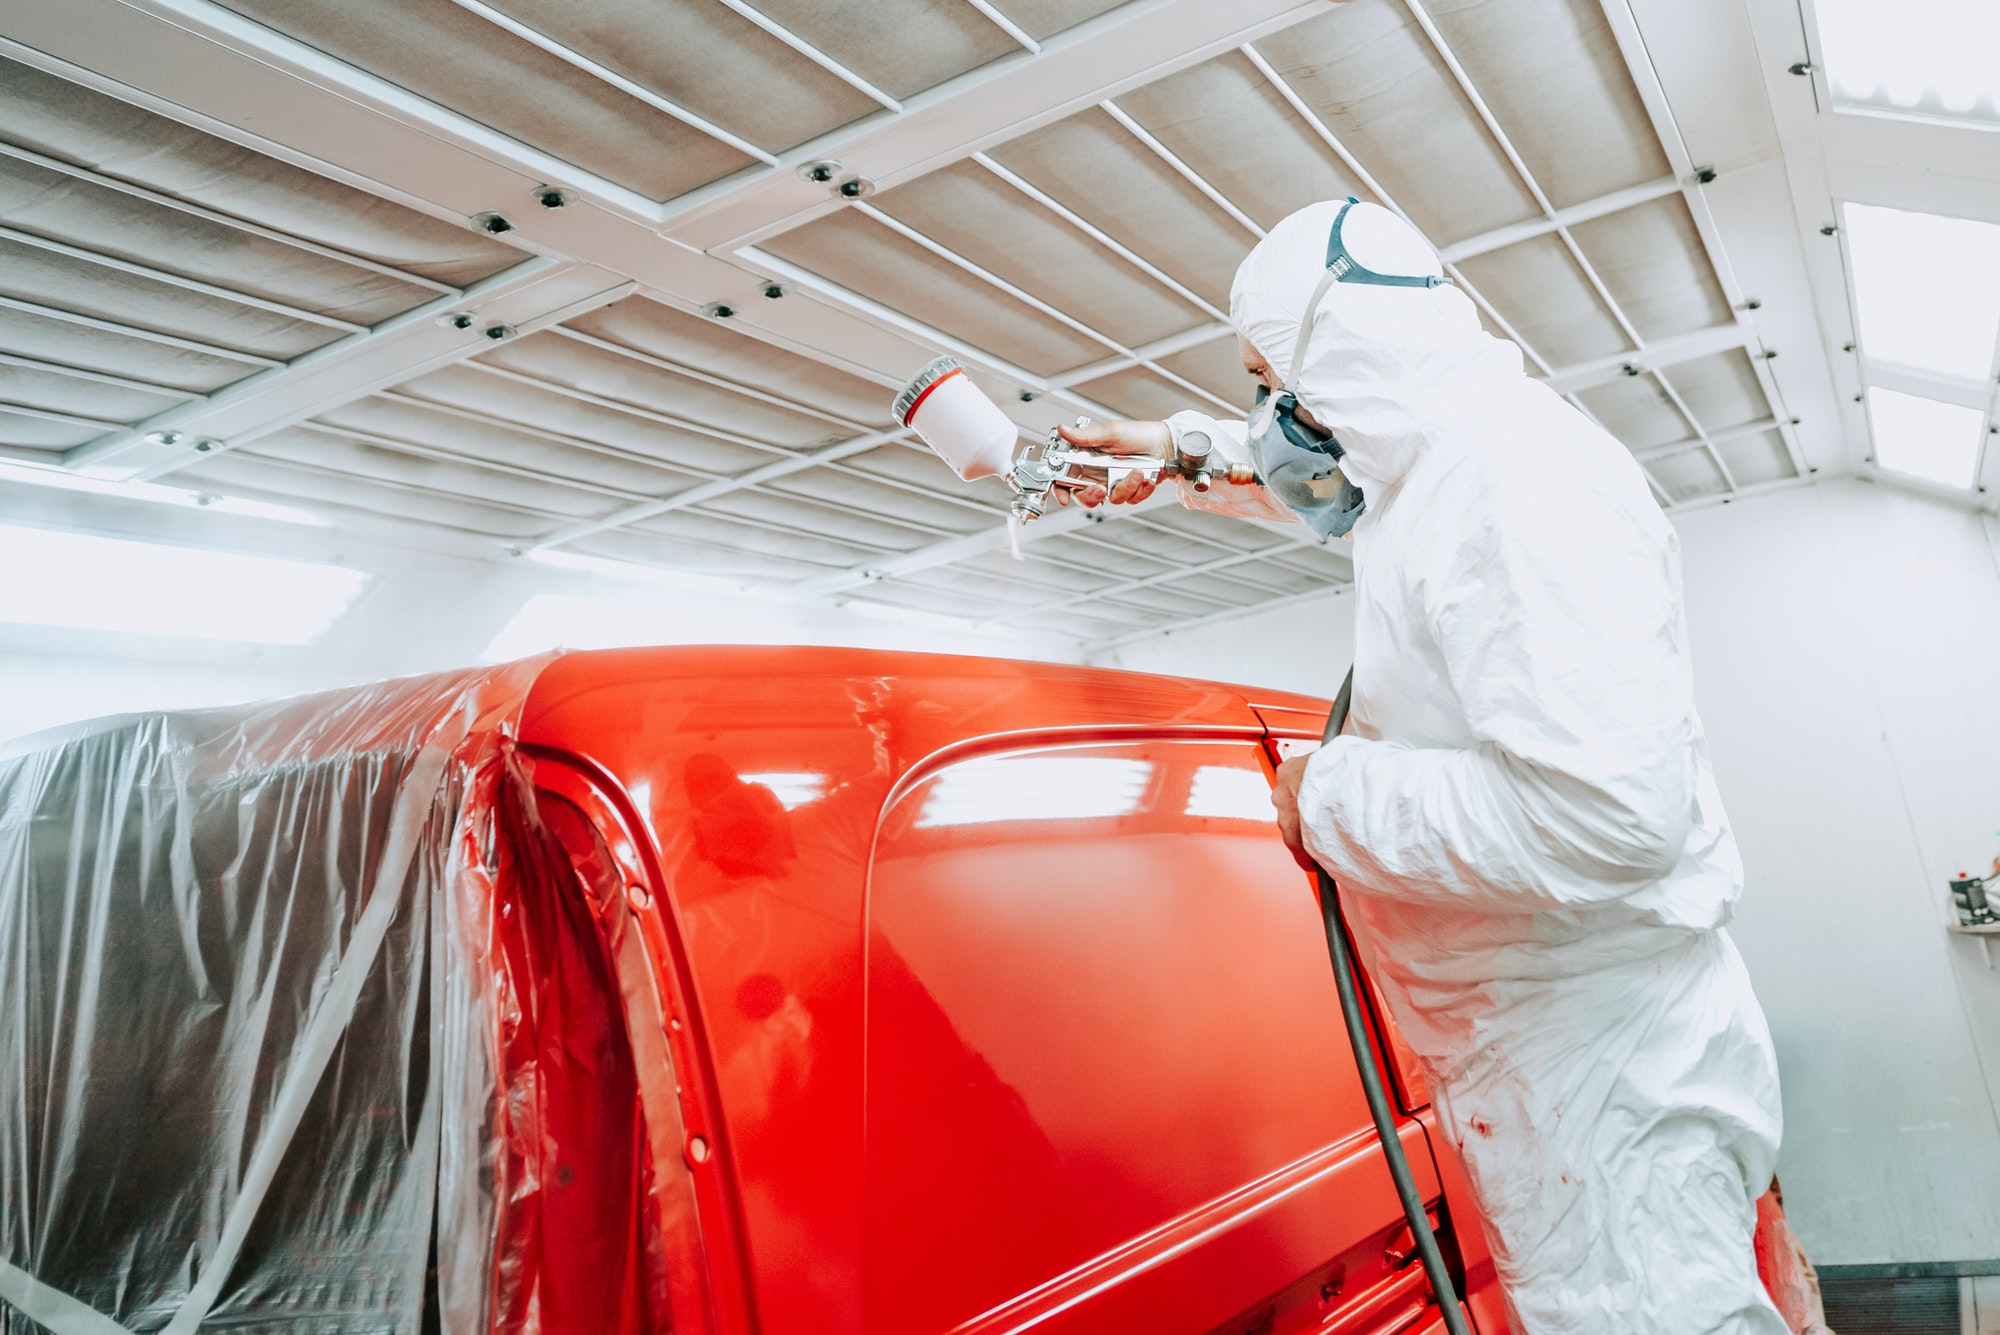 Auto painter spraying red paint on van, car in auto workshop